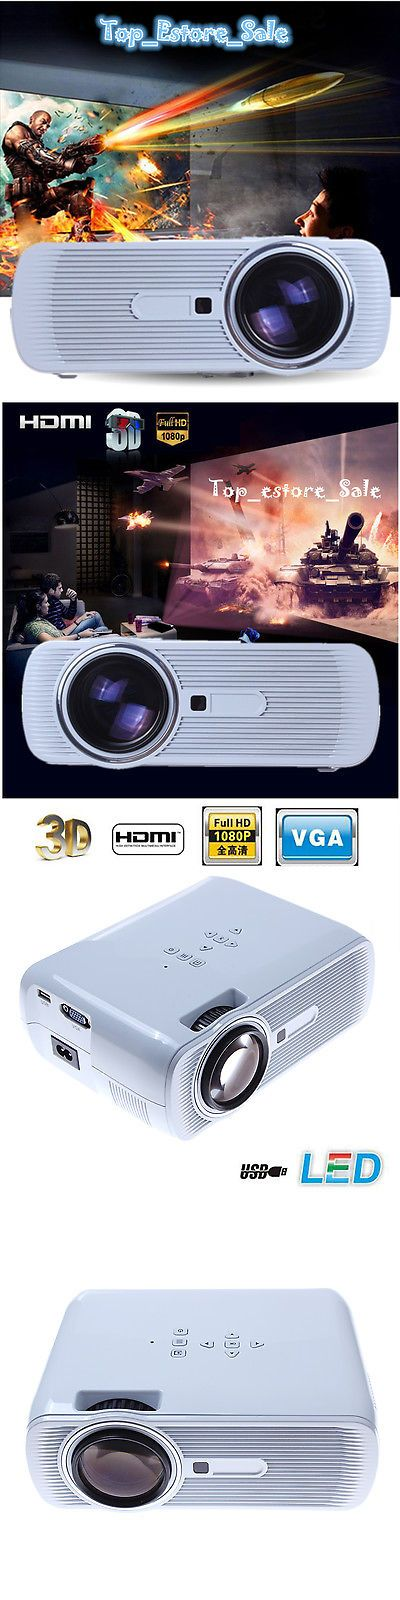 Home Theater Projectors: 3000 Lumens Hd 1080P Led Projector Home Movie Theater 3D View Vga Usb Hdmi Tv -> BUY IT NOW ONLY: $96.99 on eBay!